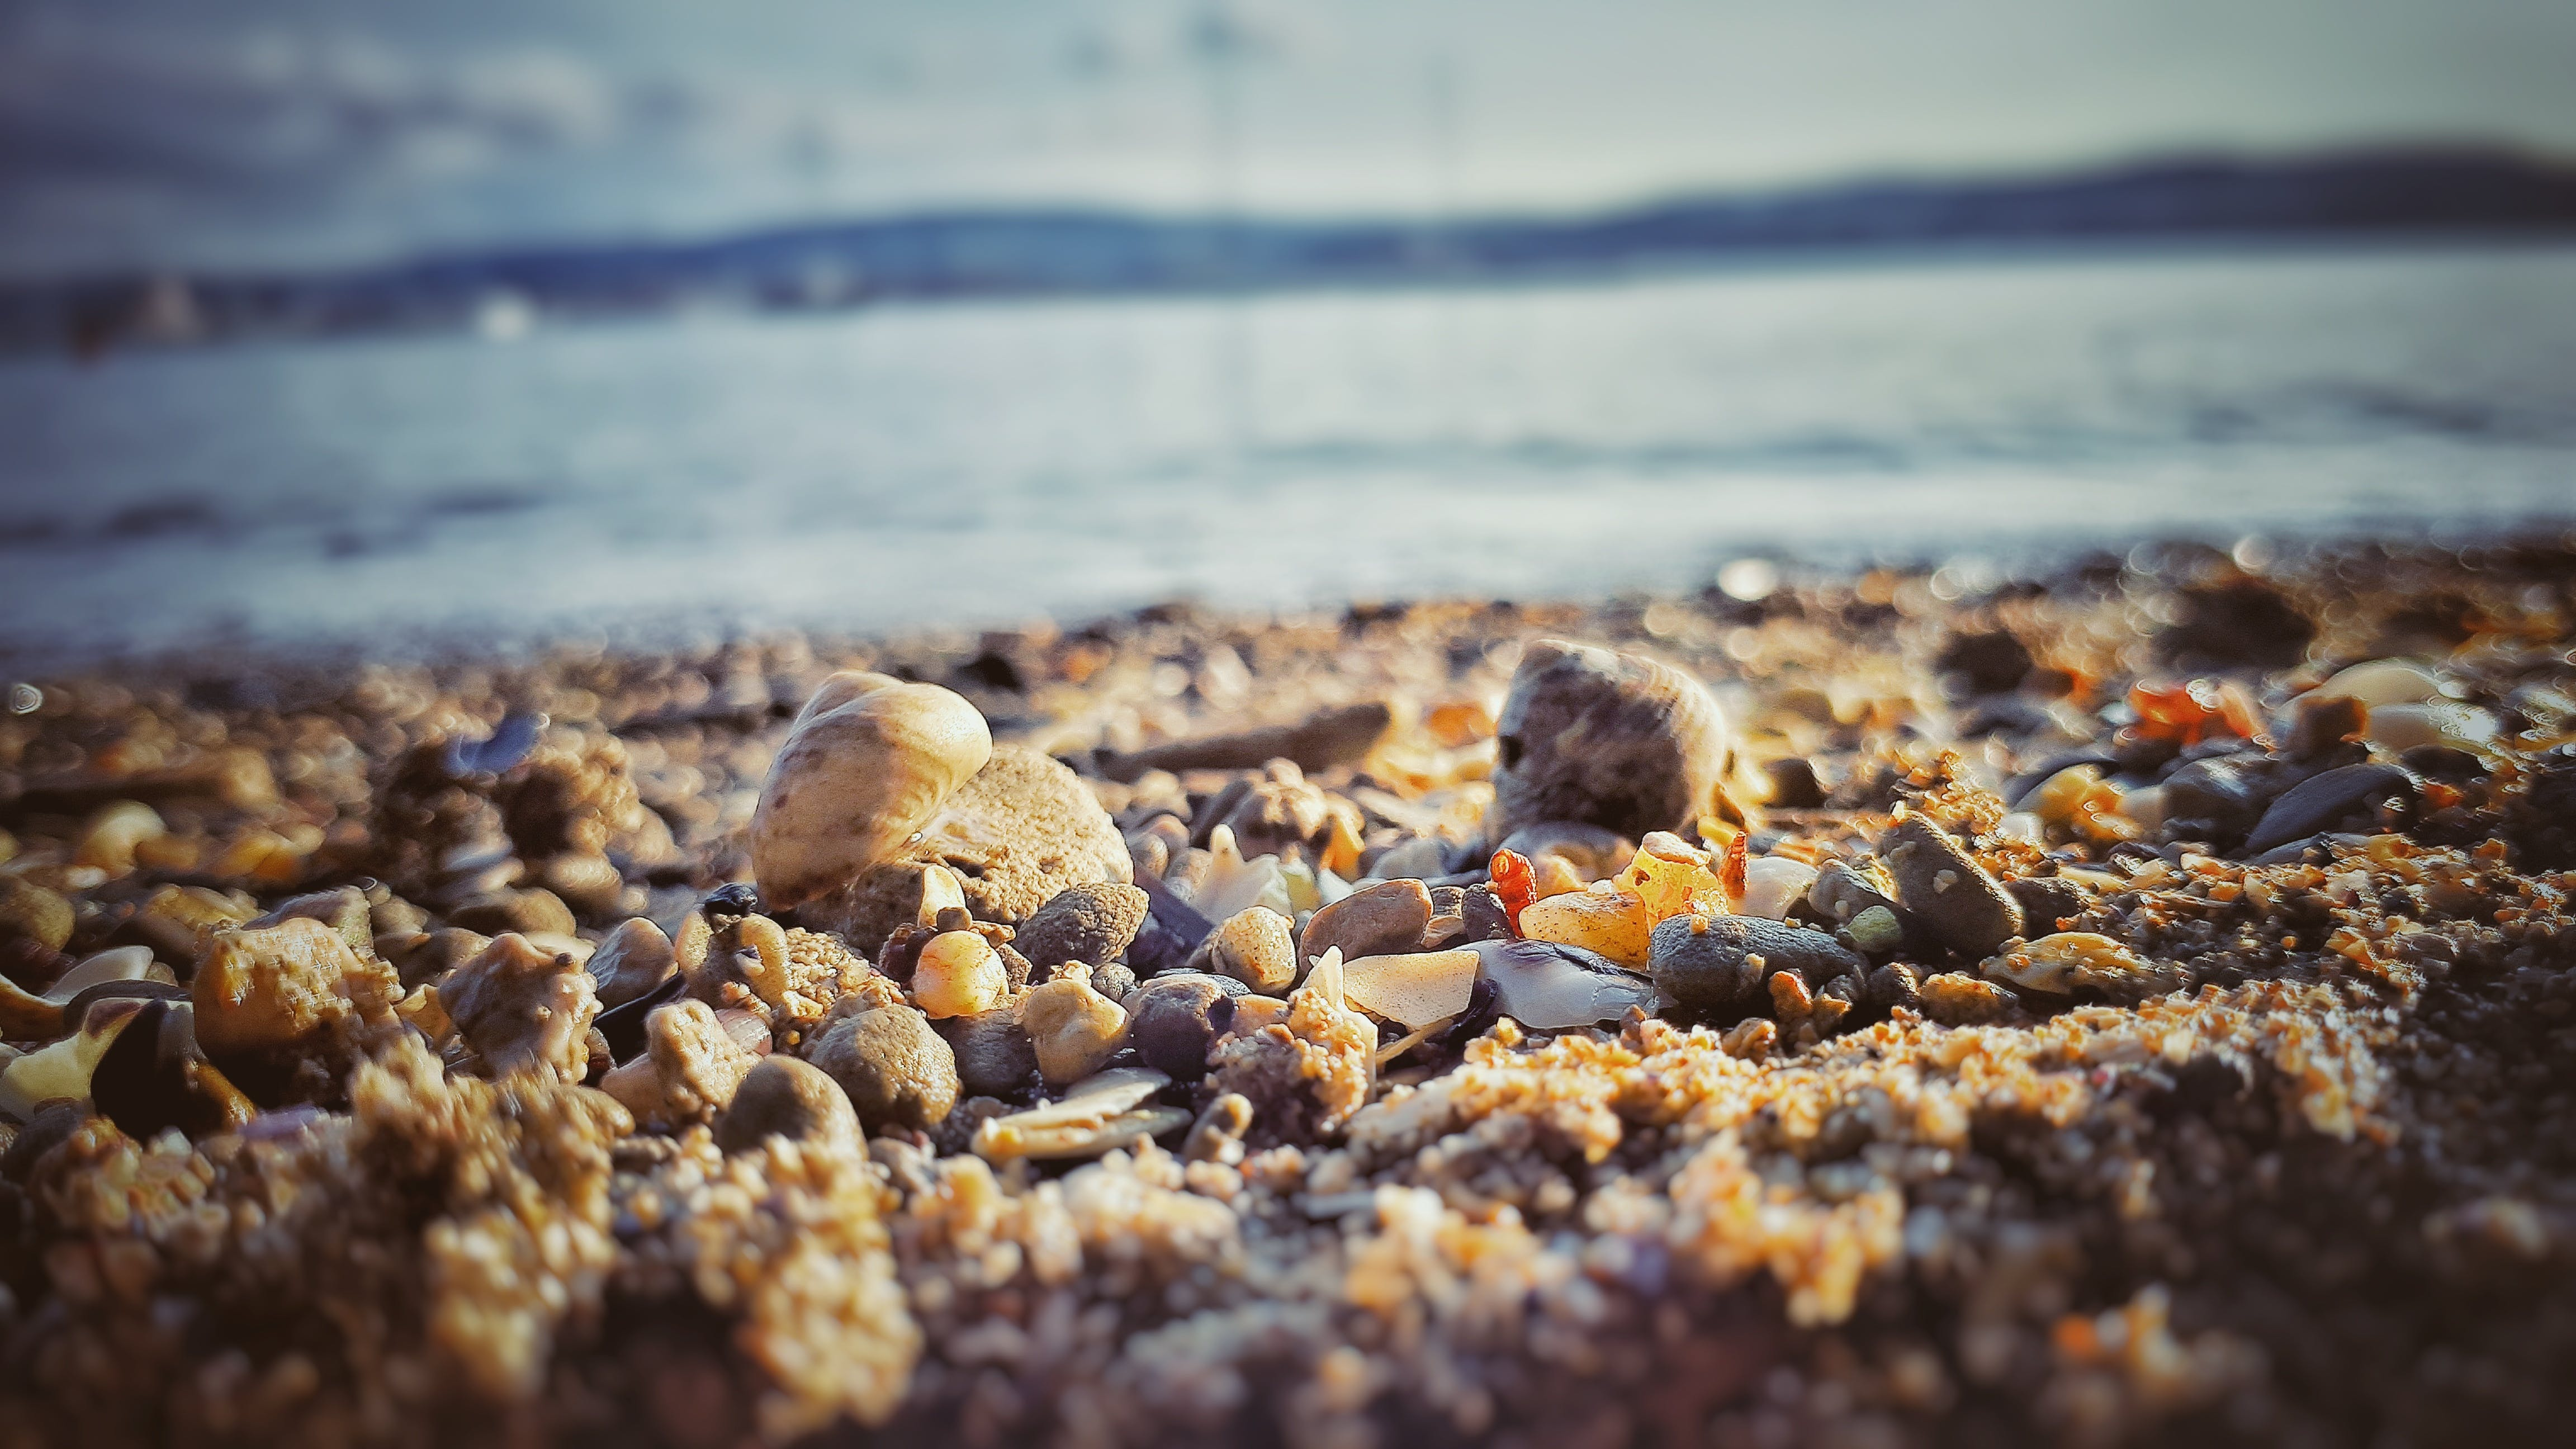 beach, blur, close-up